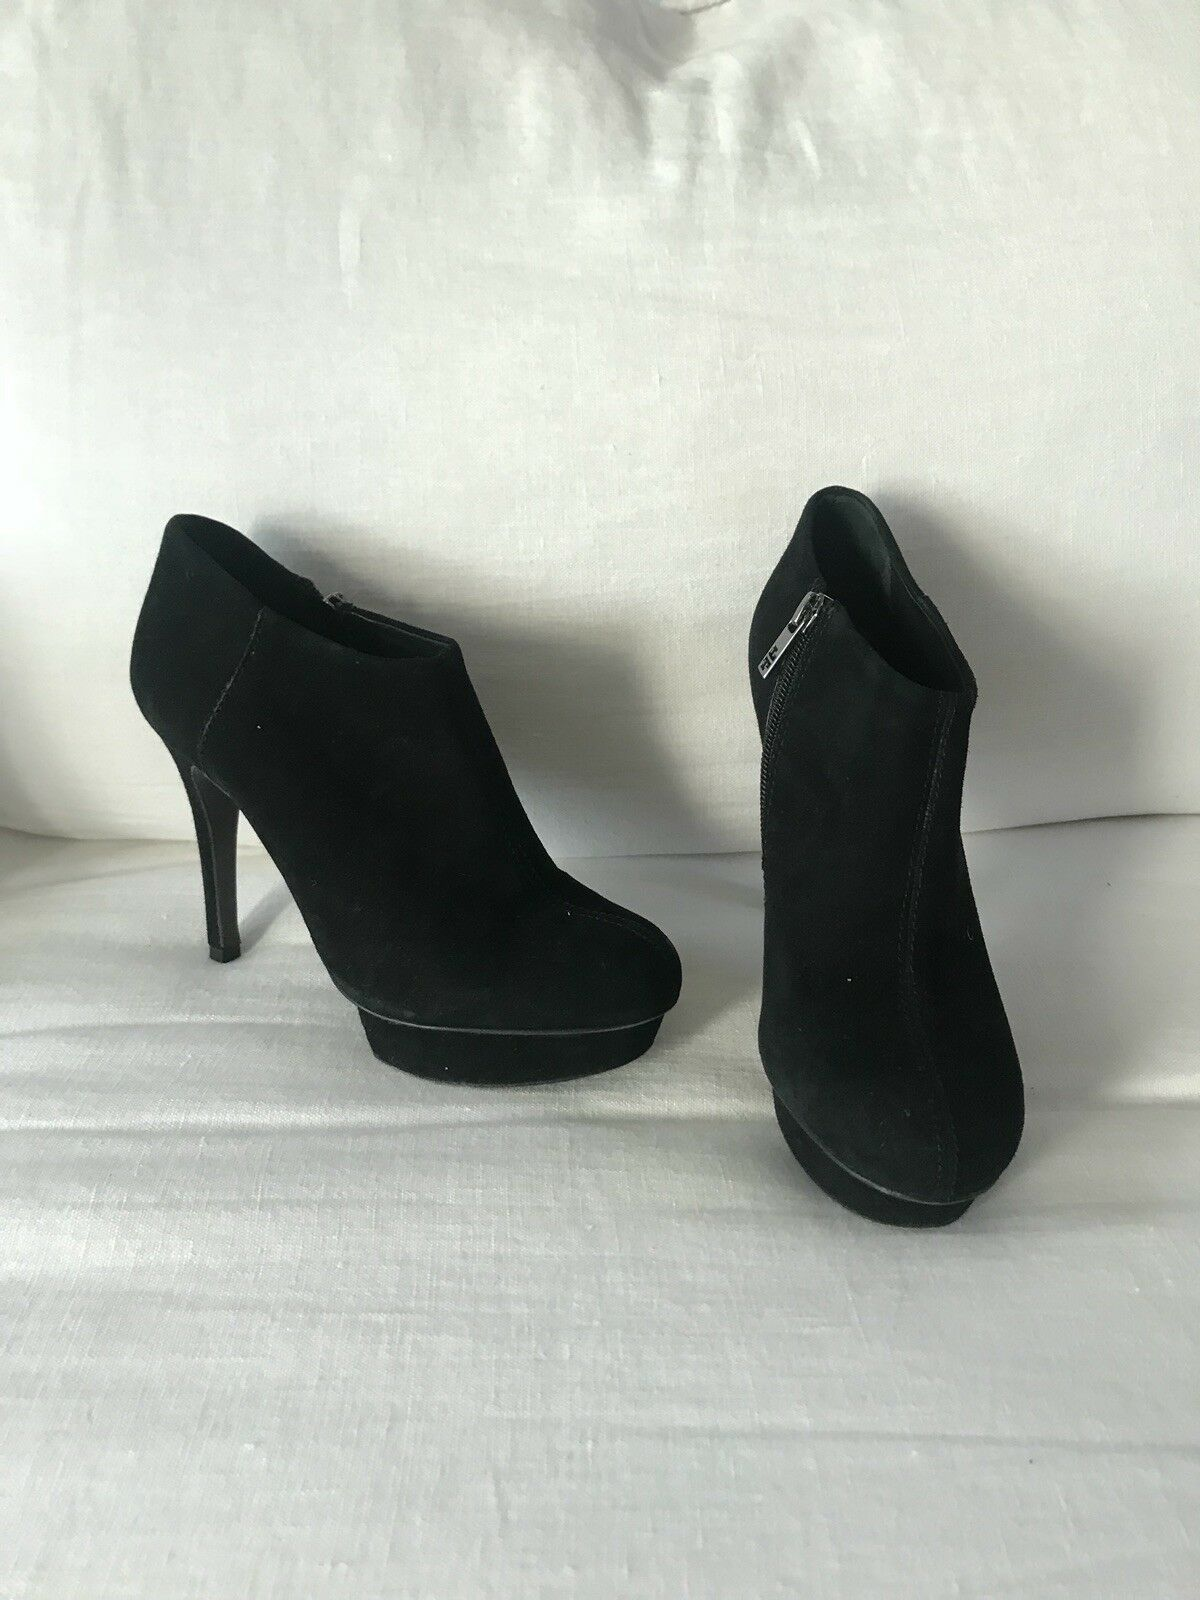 TORY BURCH Cidnay Cidnay Cidnay Black Suede Platform Ankle Booties Boots Stiletto Heel Size 6 100ef9